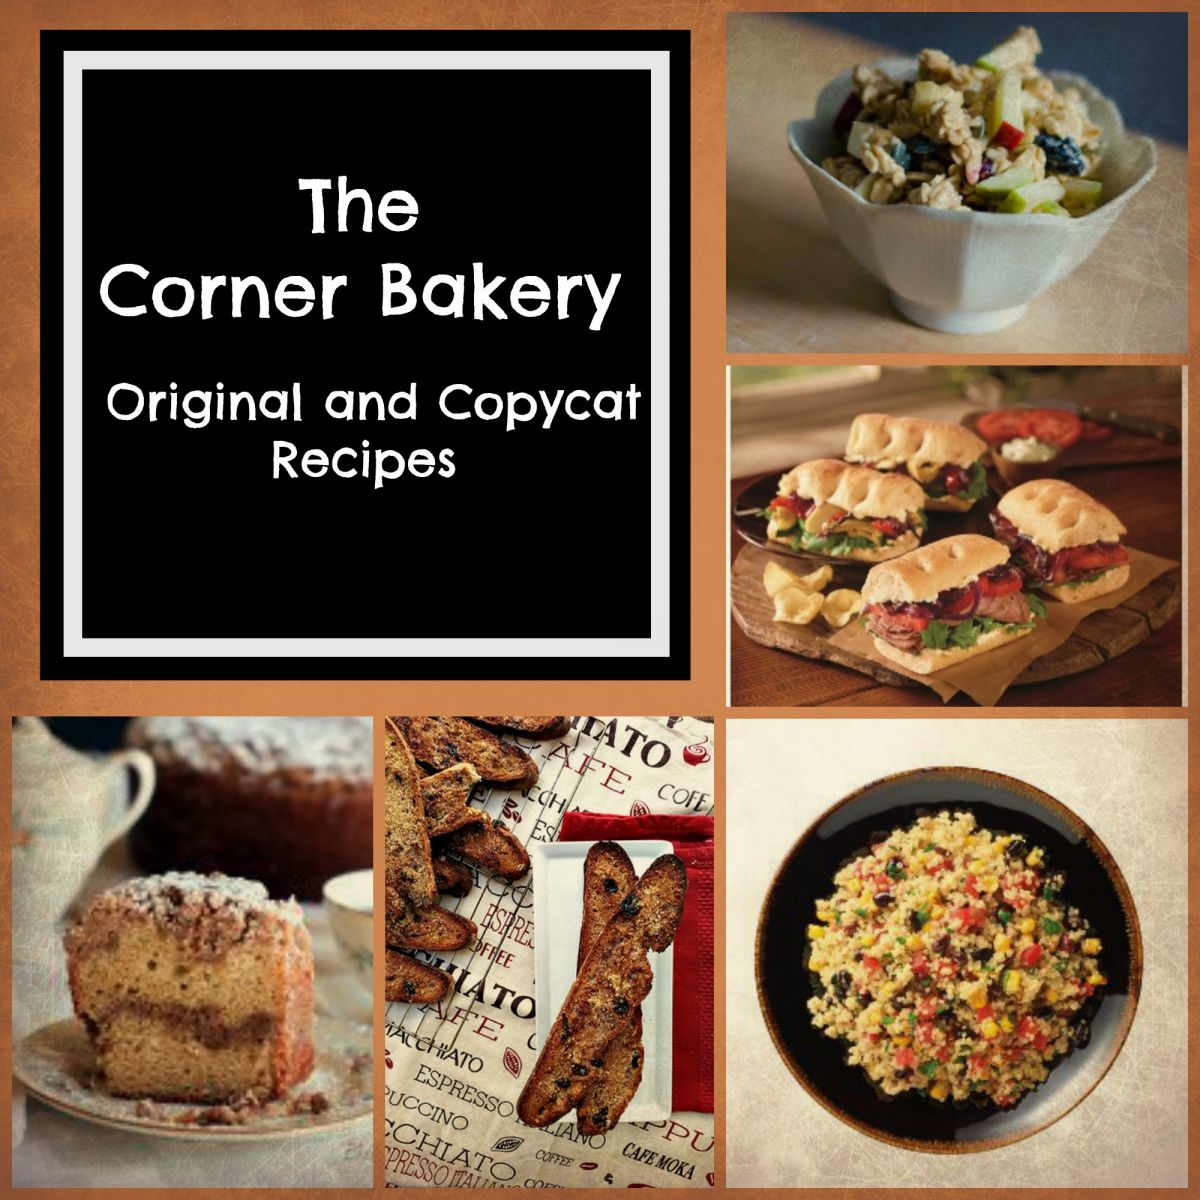 10 original and copycat recipes from the corner bakery menu 10 original and copycat recipes from the corner bakery menu altavistaventures Image collections